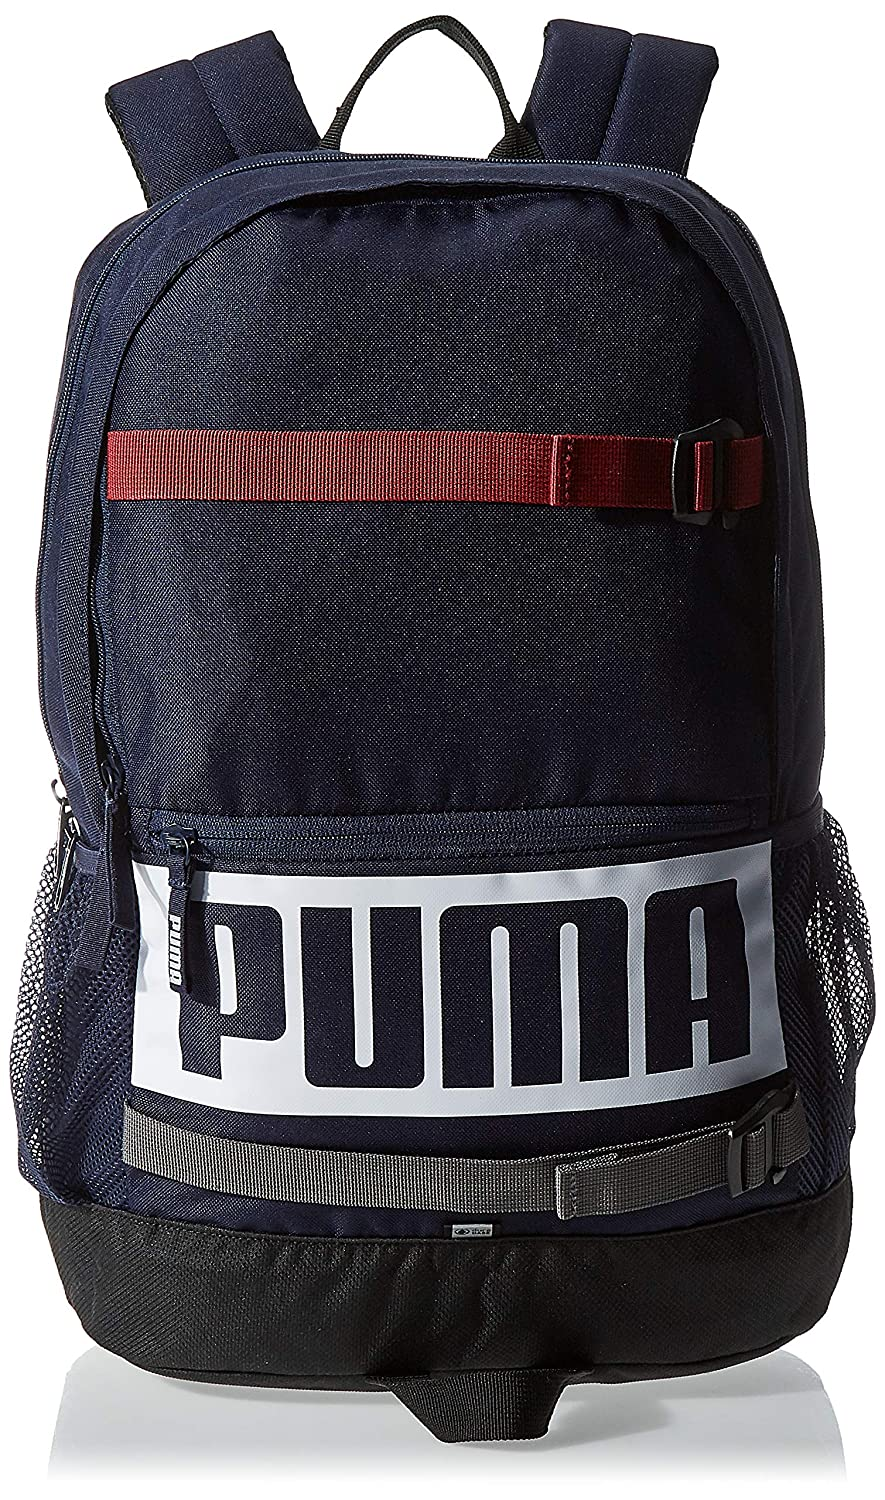 PUMA Peacoat School/College Backpack